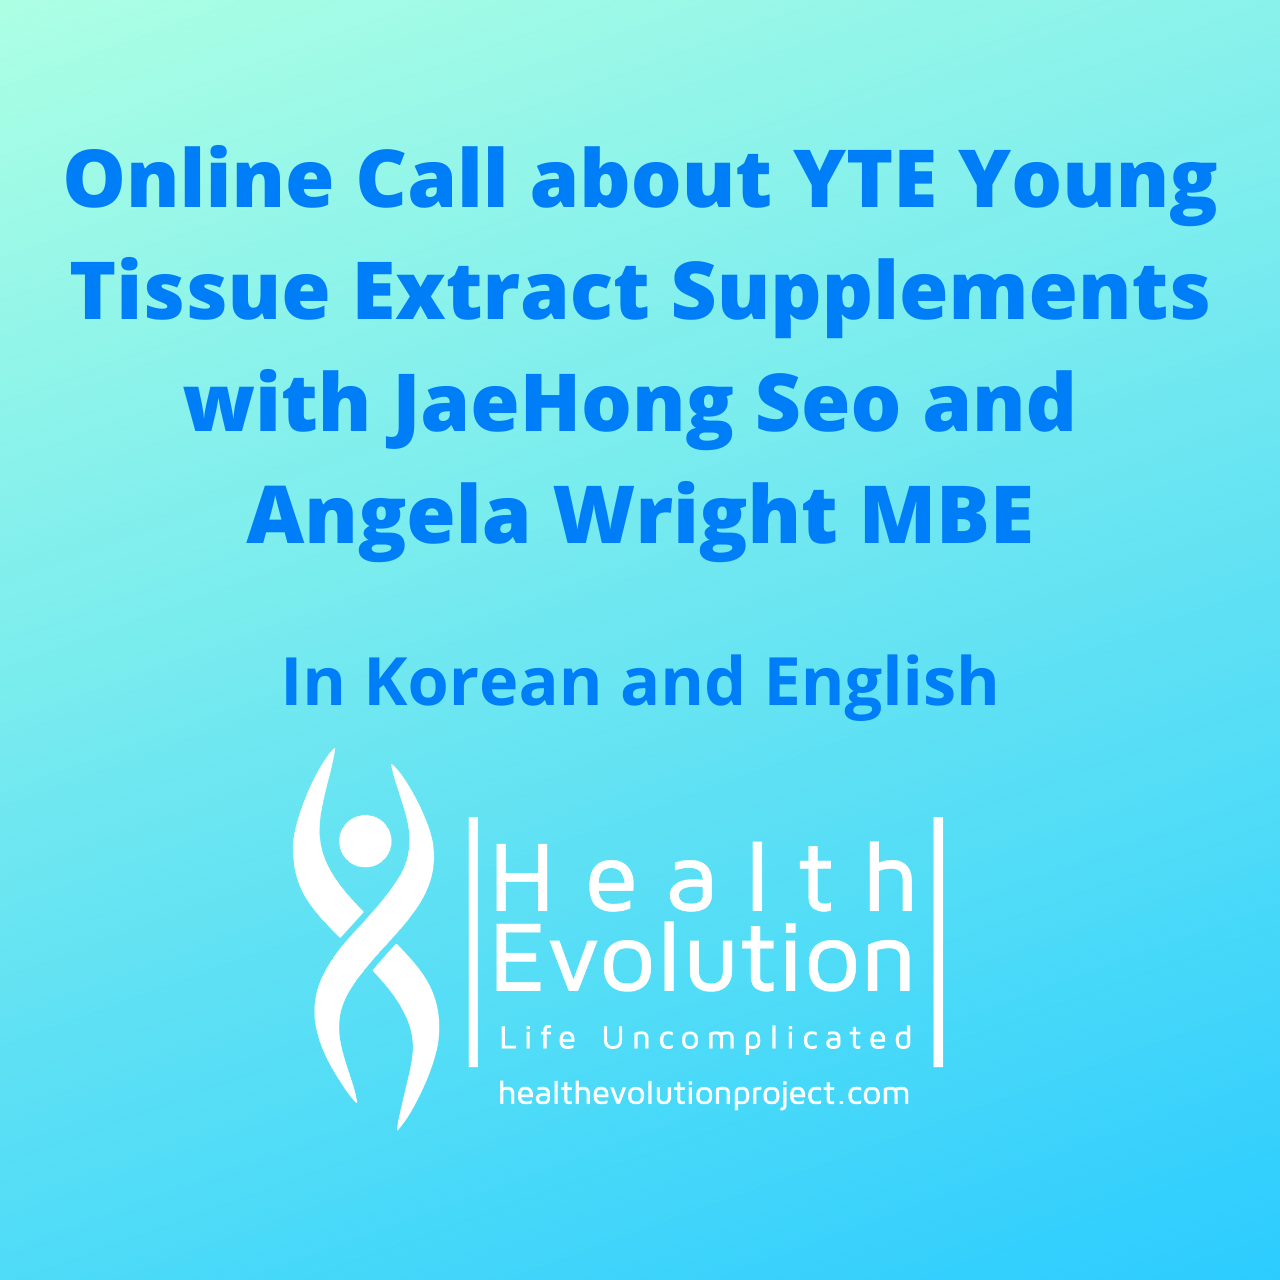 Online Call about YTE Young Tissue Extract Supplements in Korean and English, with JaeHong Seo and  Angela Wright MBE